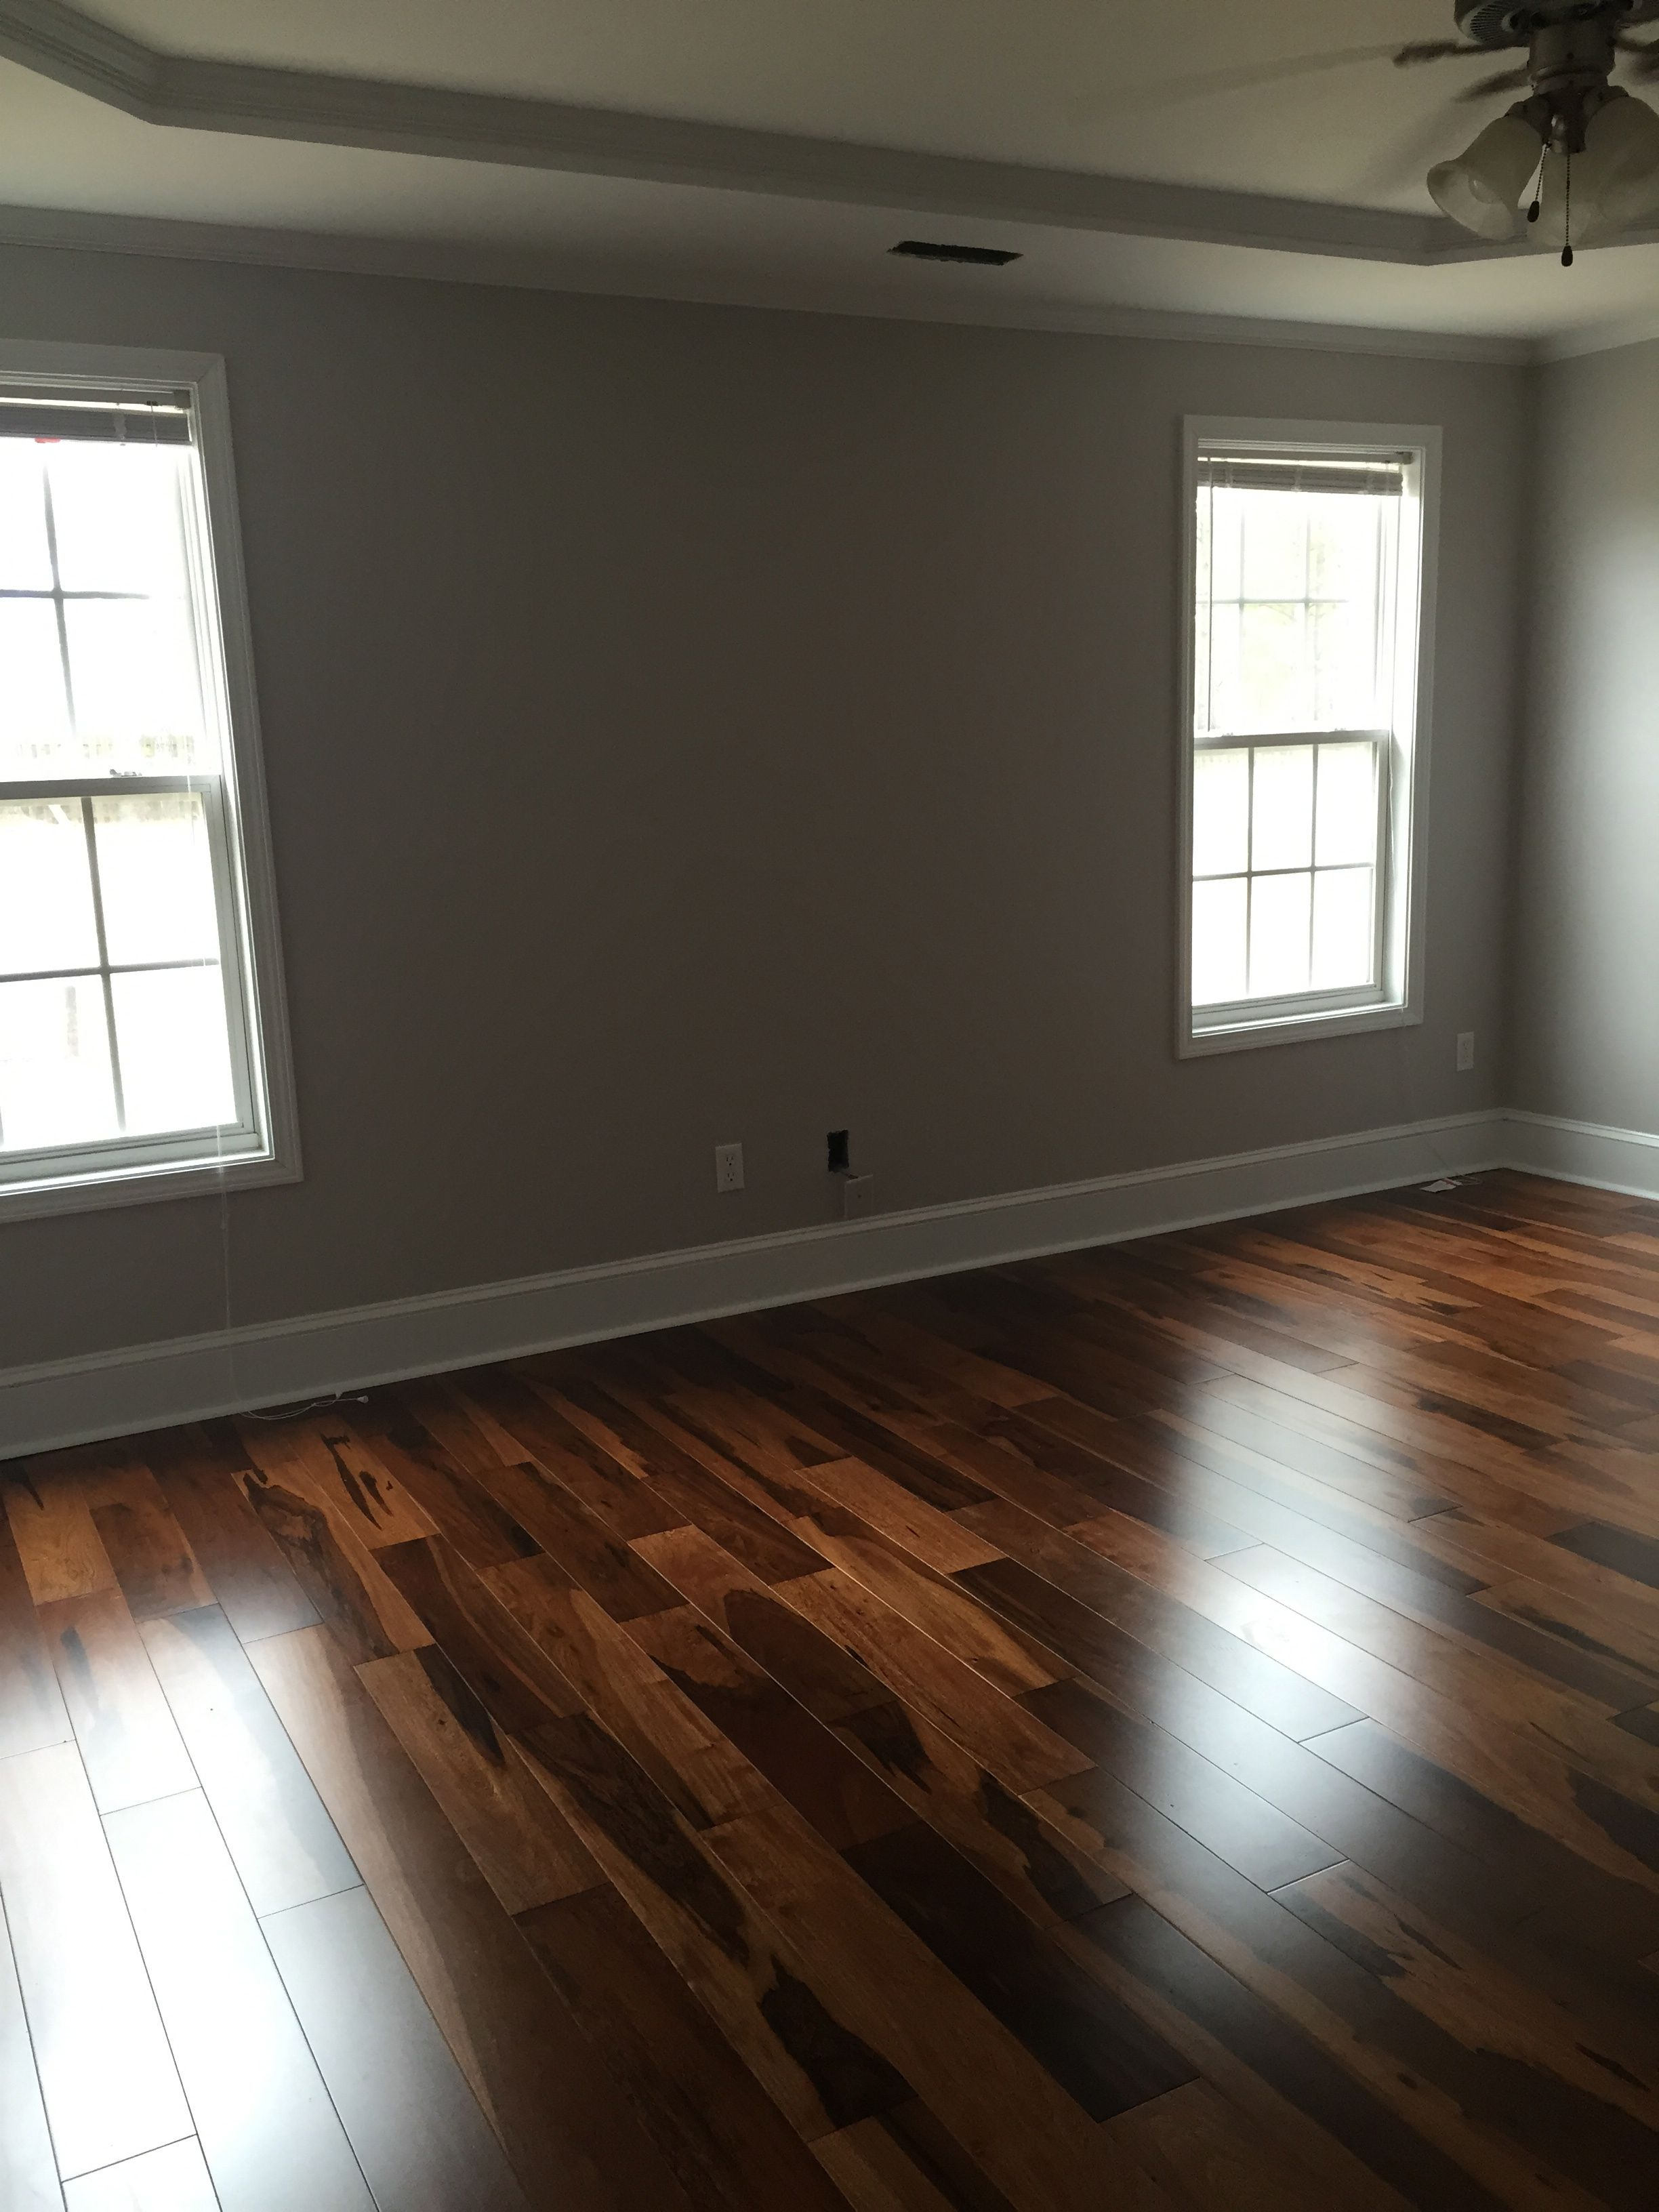 Dark Hardwood Floors Brazilian Walnut Chocolate Stain Grey Paint Color Silver Spoon Olympic